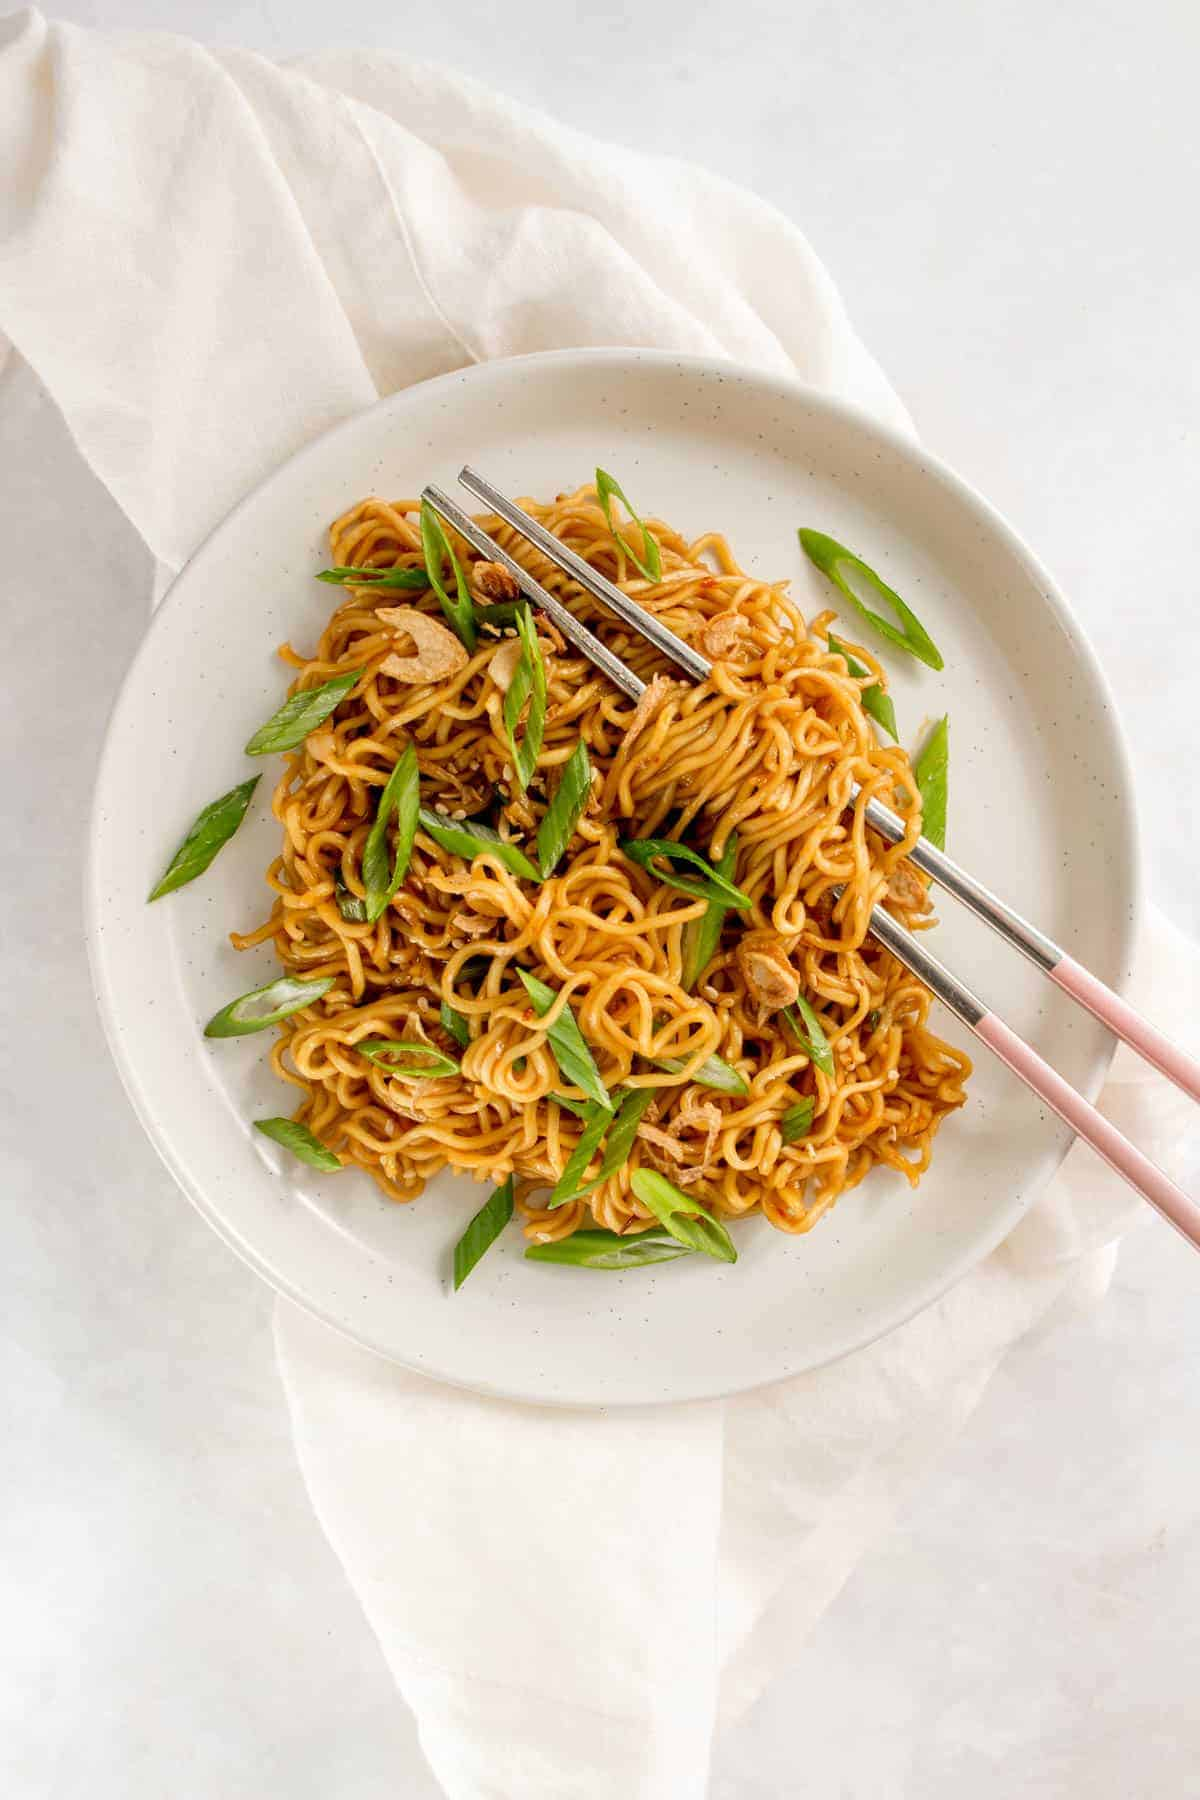 Bowl of sesame noodles topped with green onions and fried onions.